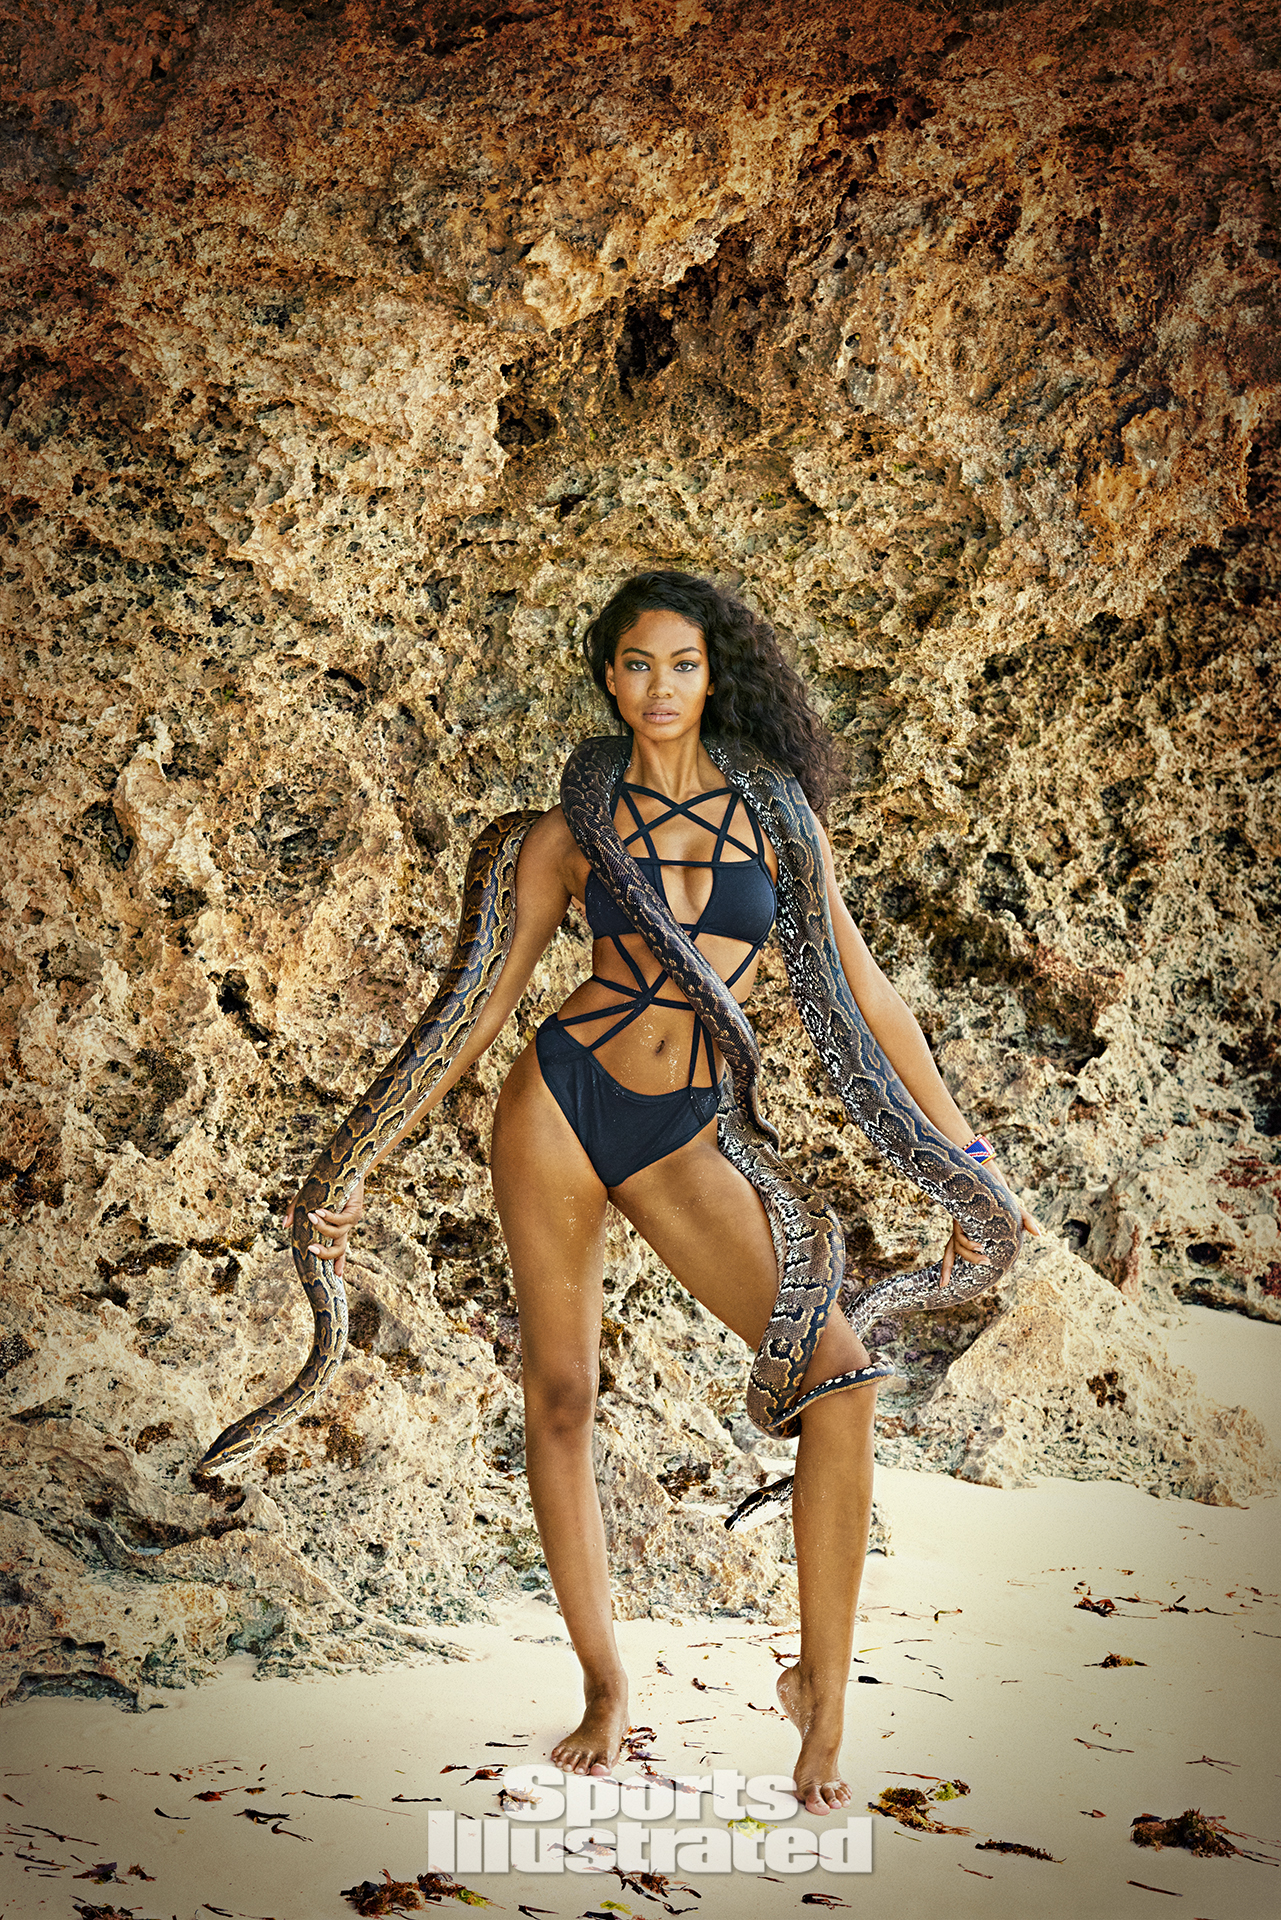 Chanel Iman was photographed by Ruven Afanador in Zanzibar. Swimsuit by CHROMAT.